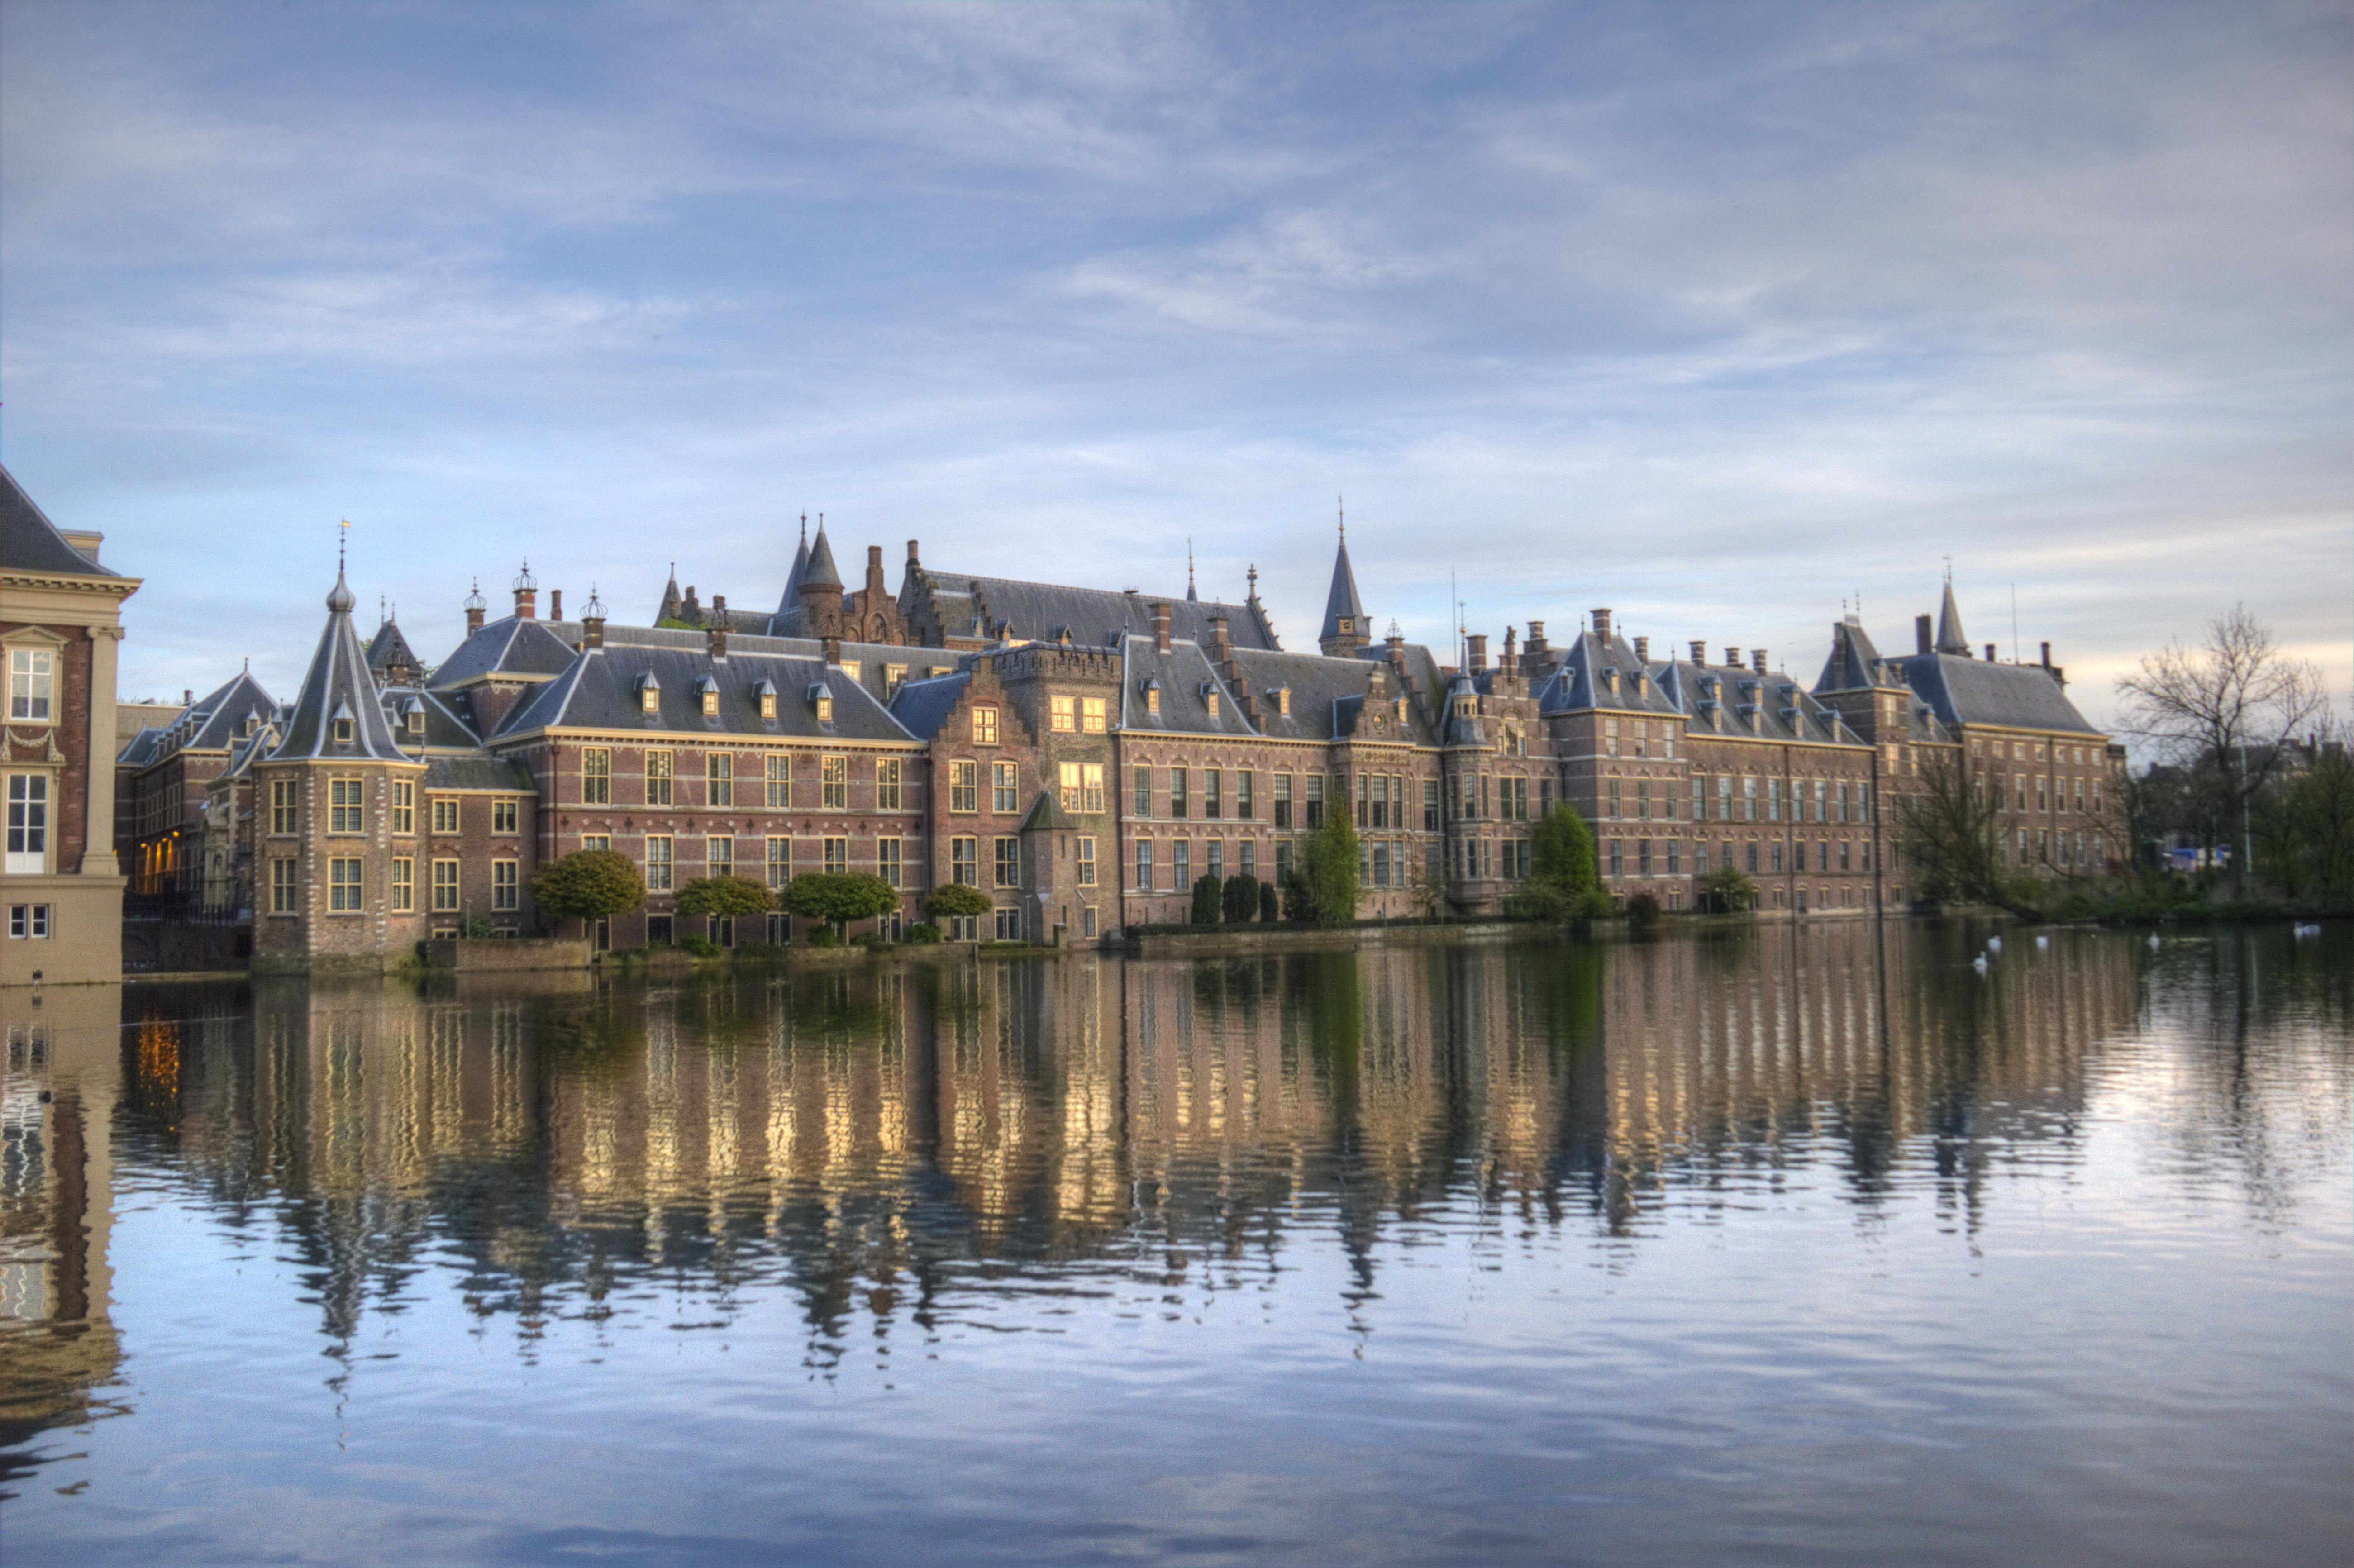 The Hague - City in Netherlands - Sightseeing and ...